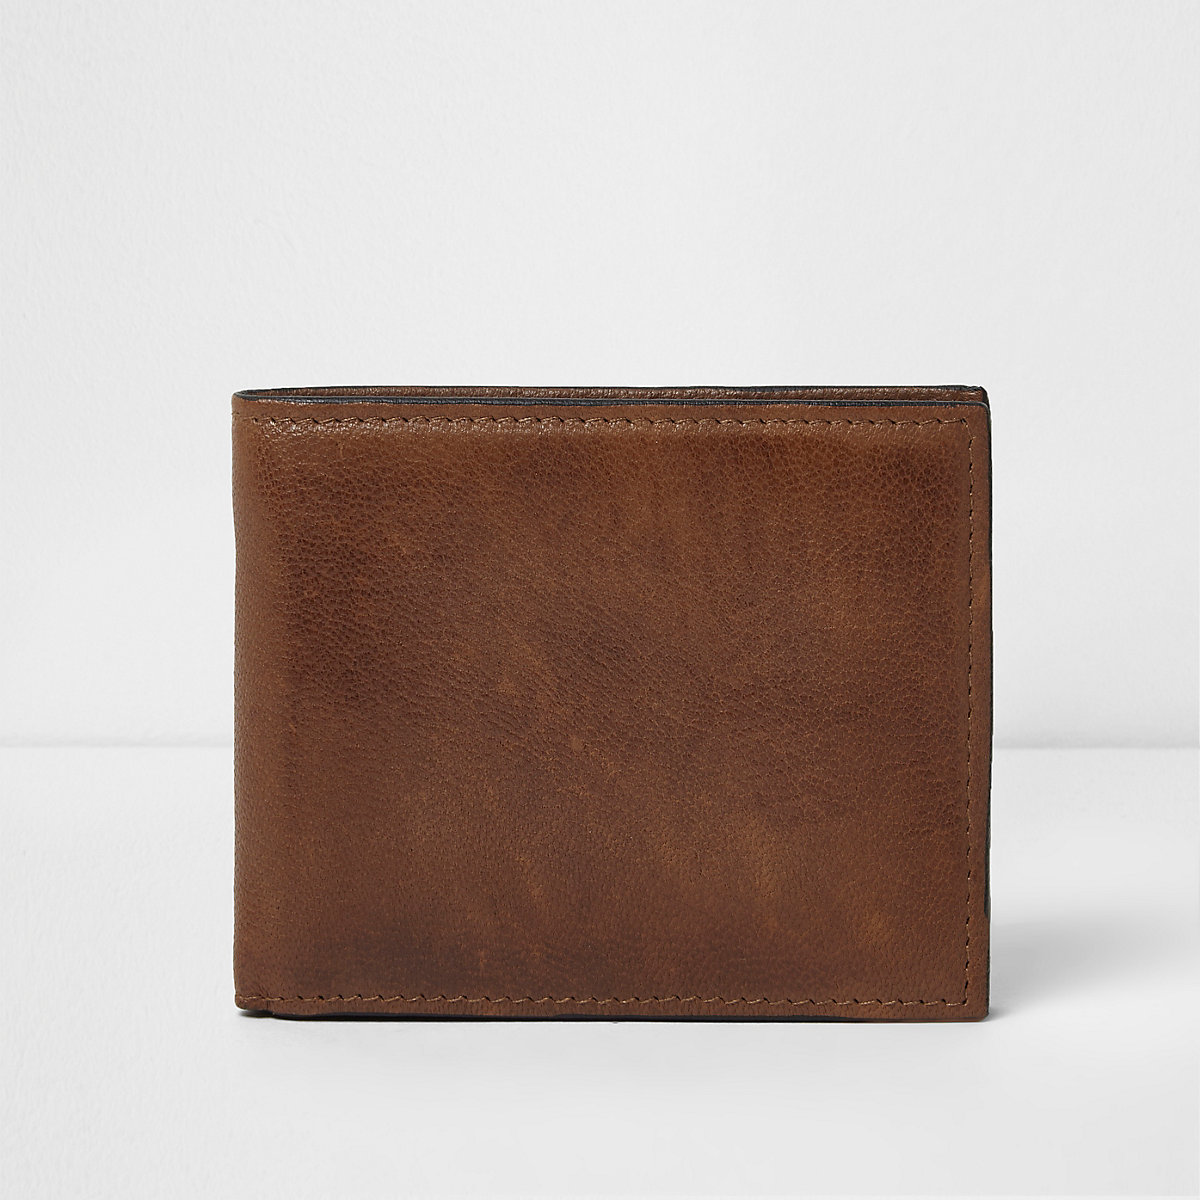 Tan brown leather fold out wallet